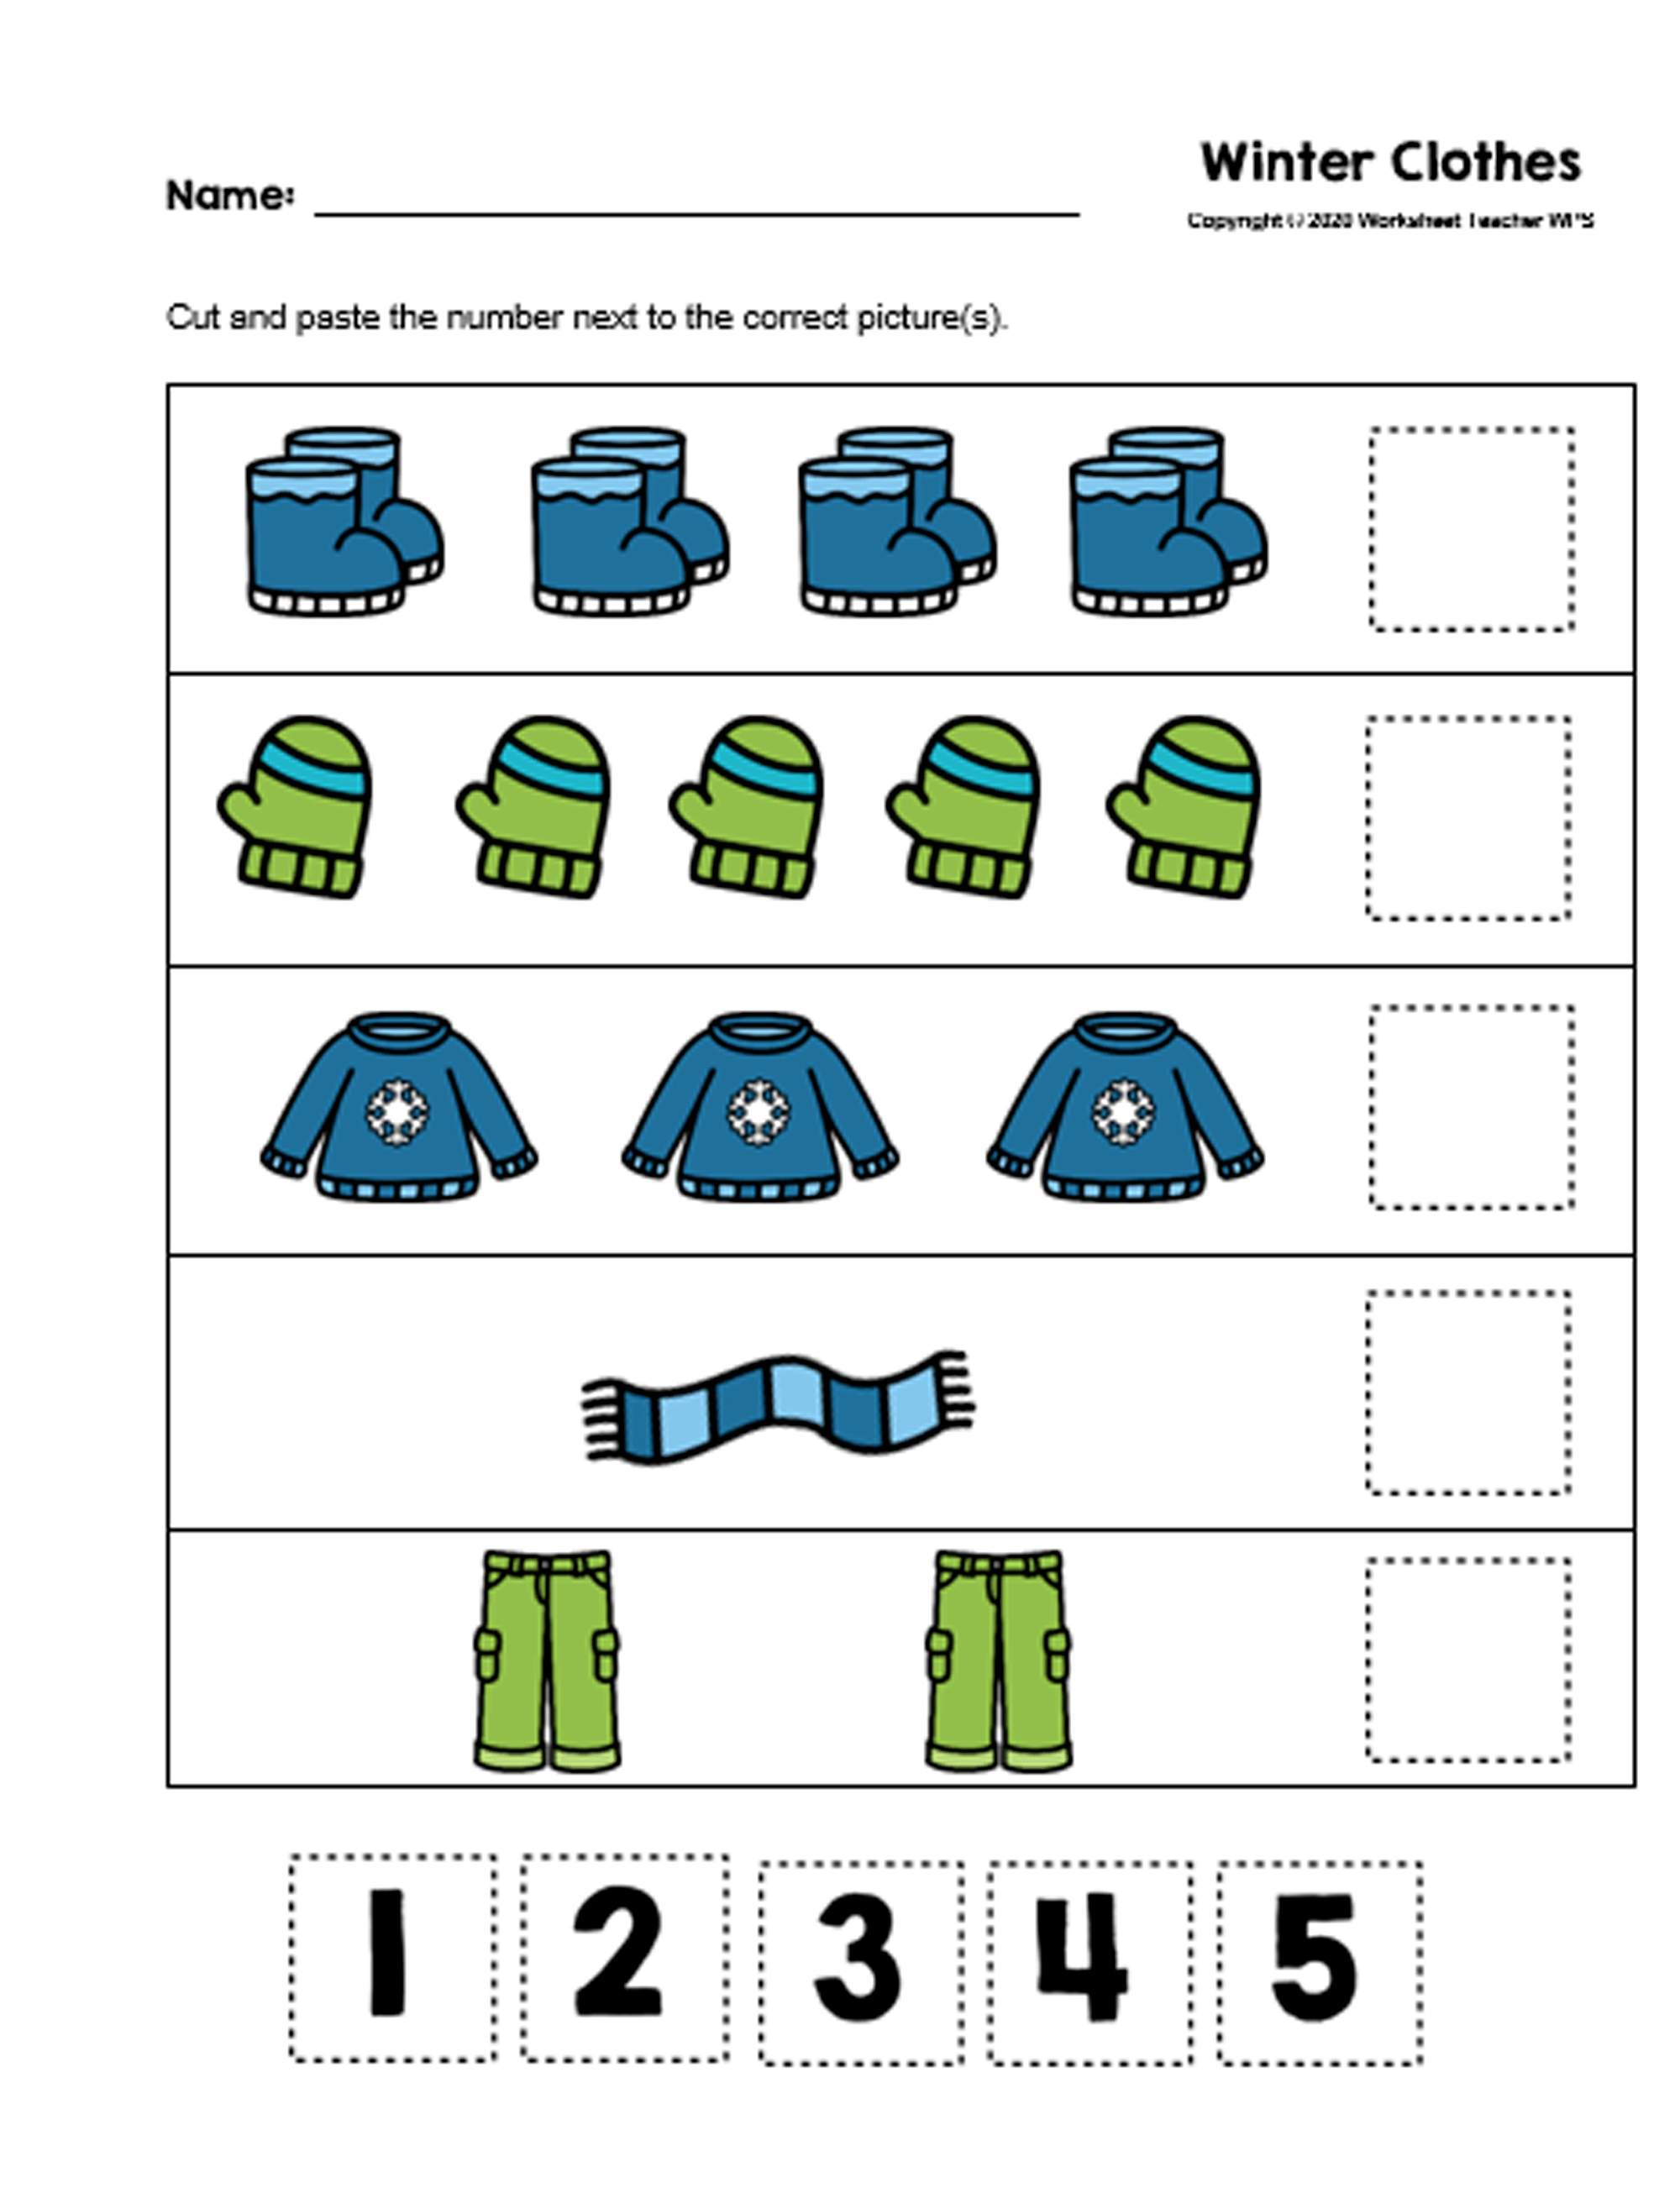 10 Winter Clothes Preschool Curriculum Activities Bundle